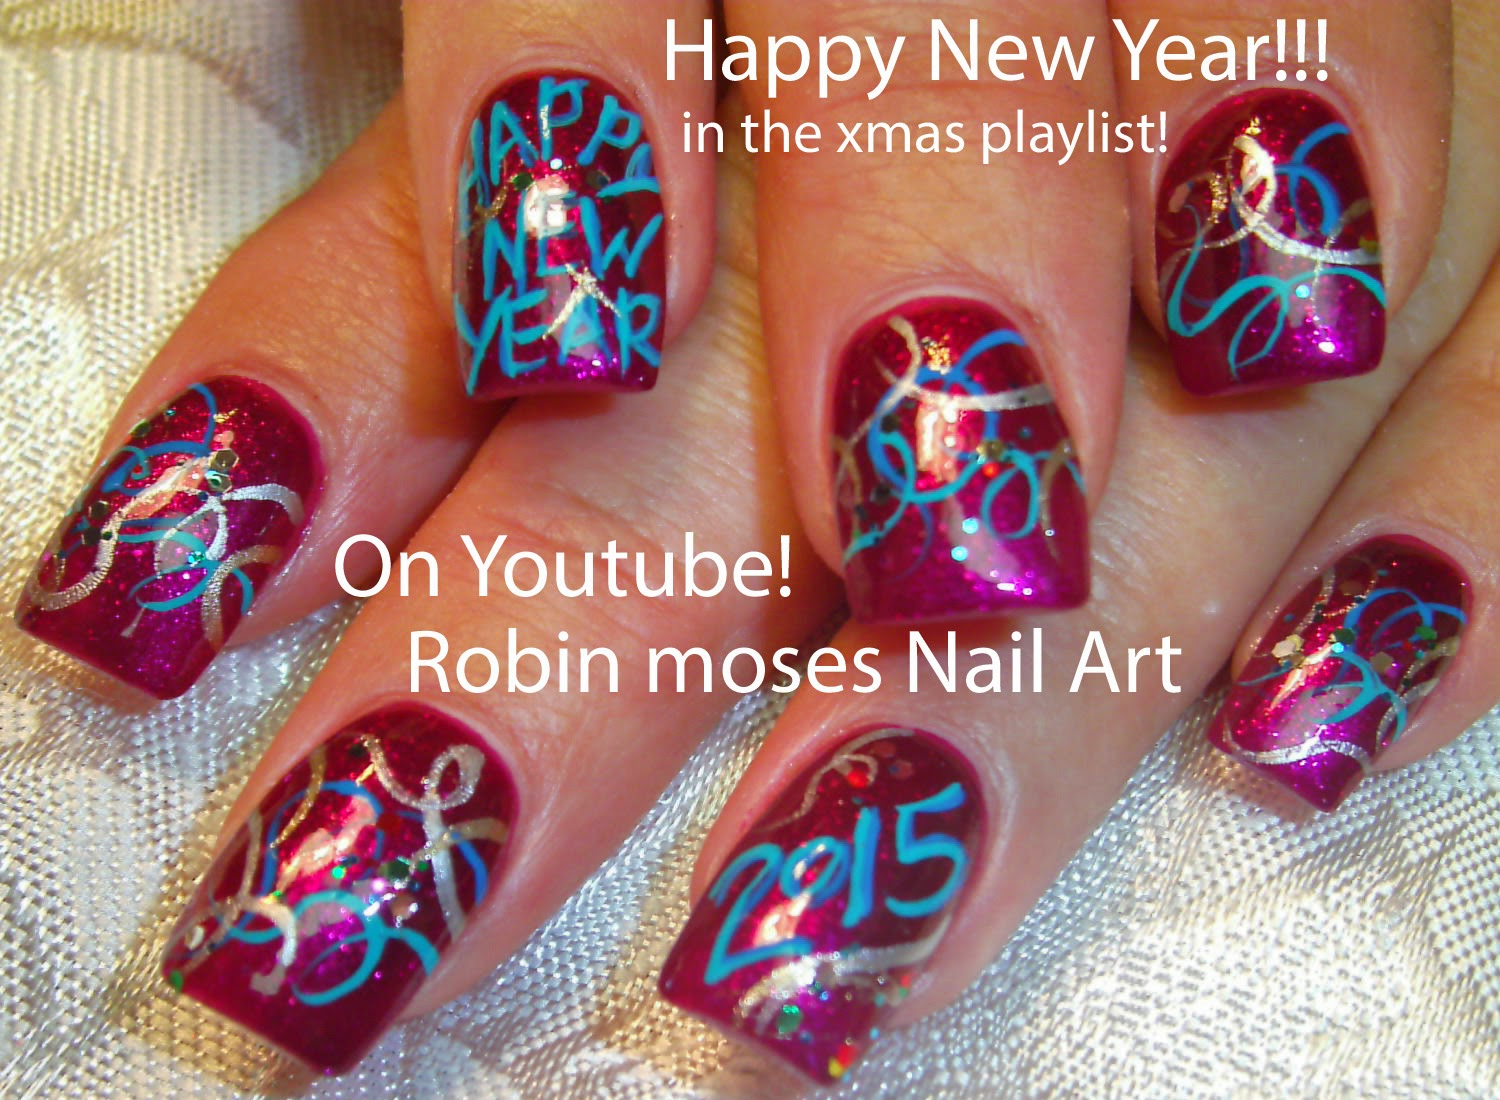 Robin moses nail art new years nails nye nails nail art new years nails nye nails nail art new years new year ideas new year clip art new years eve happy new year prinsesfo Images